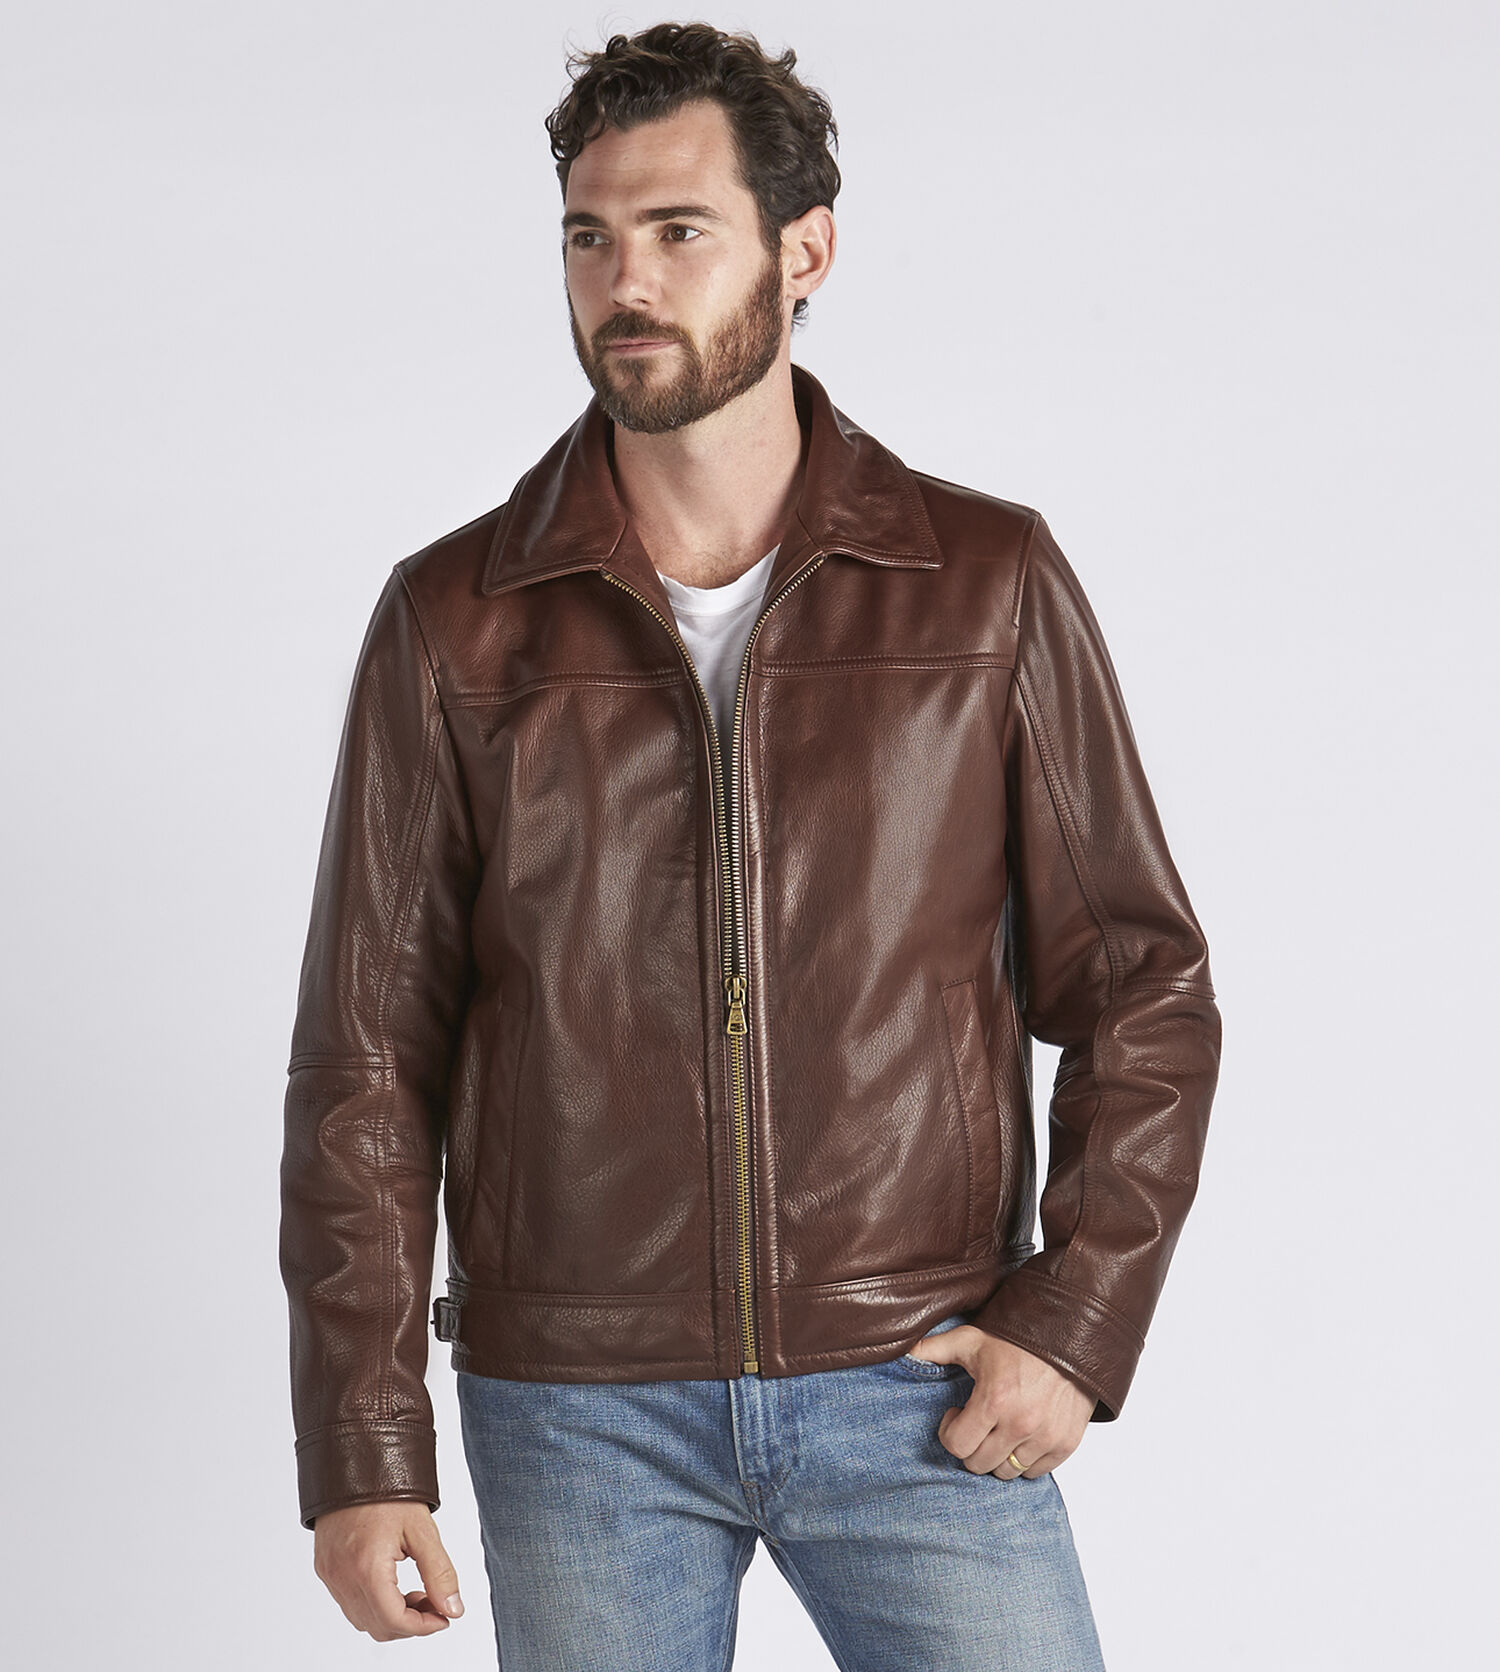 Large mens leather jackets